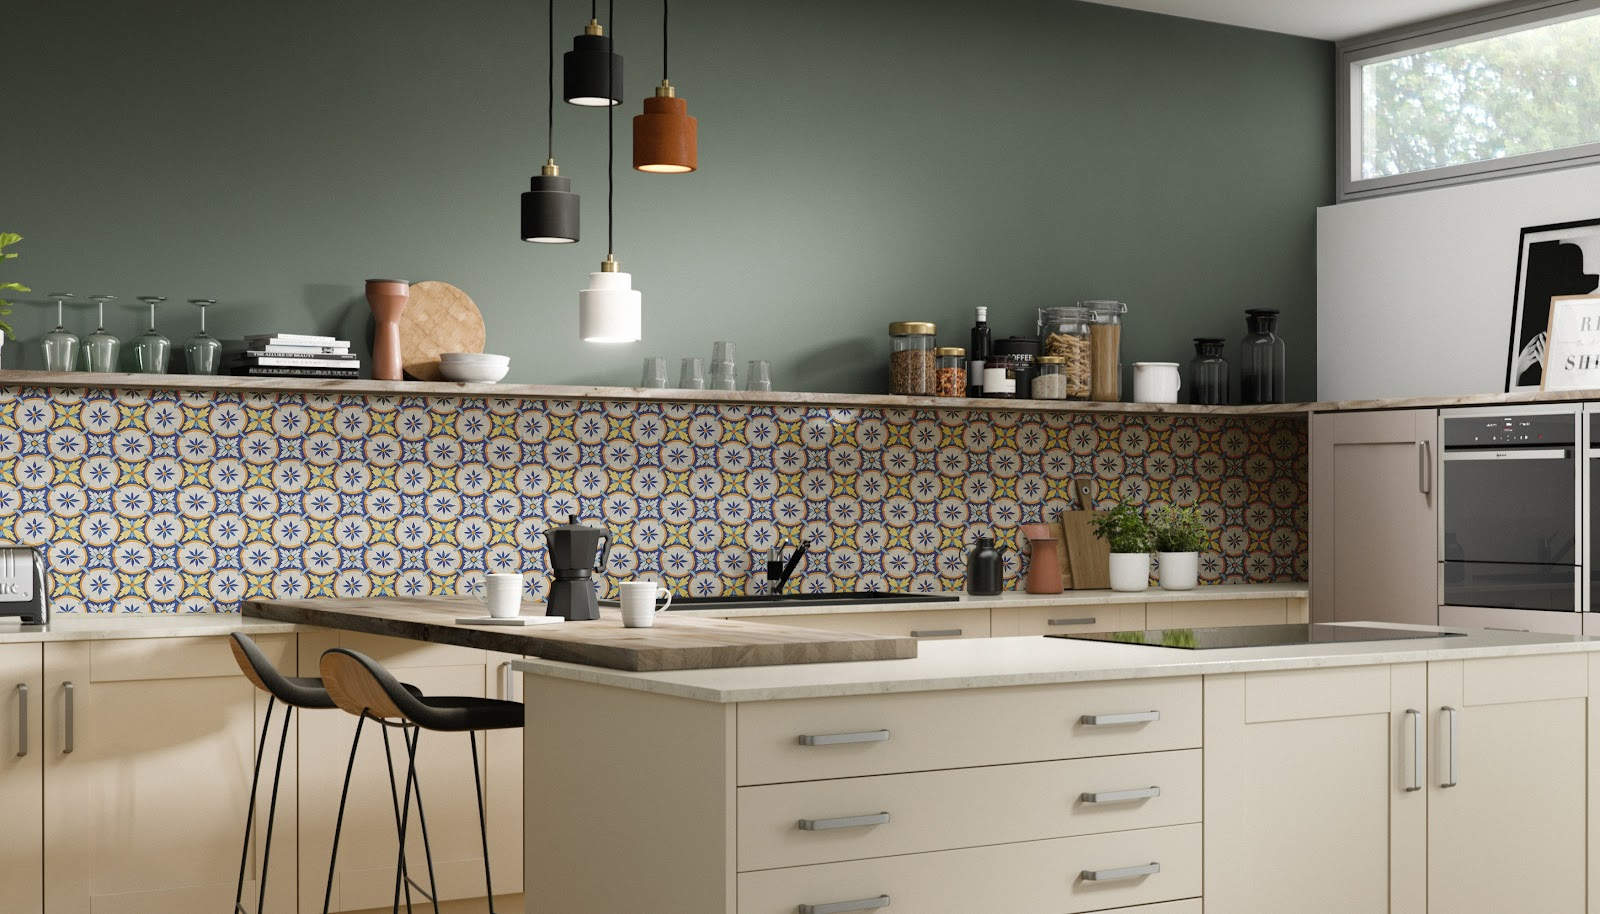 the portuguese azulejo backsplash